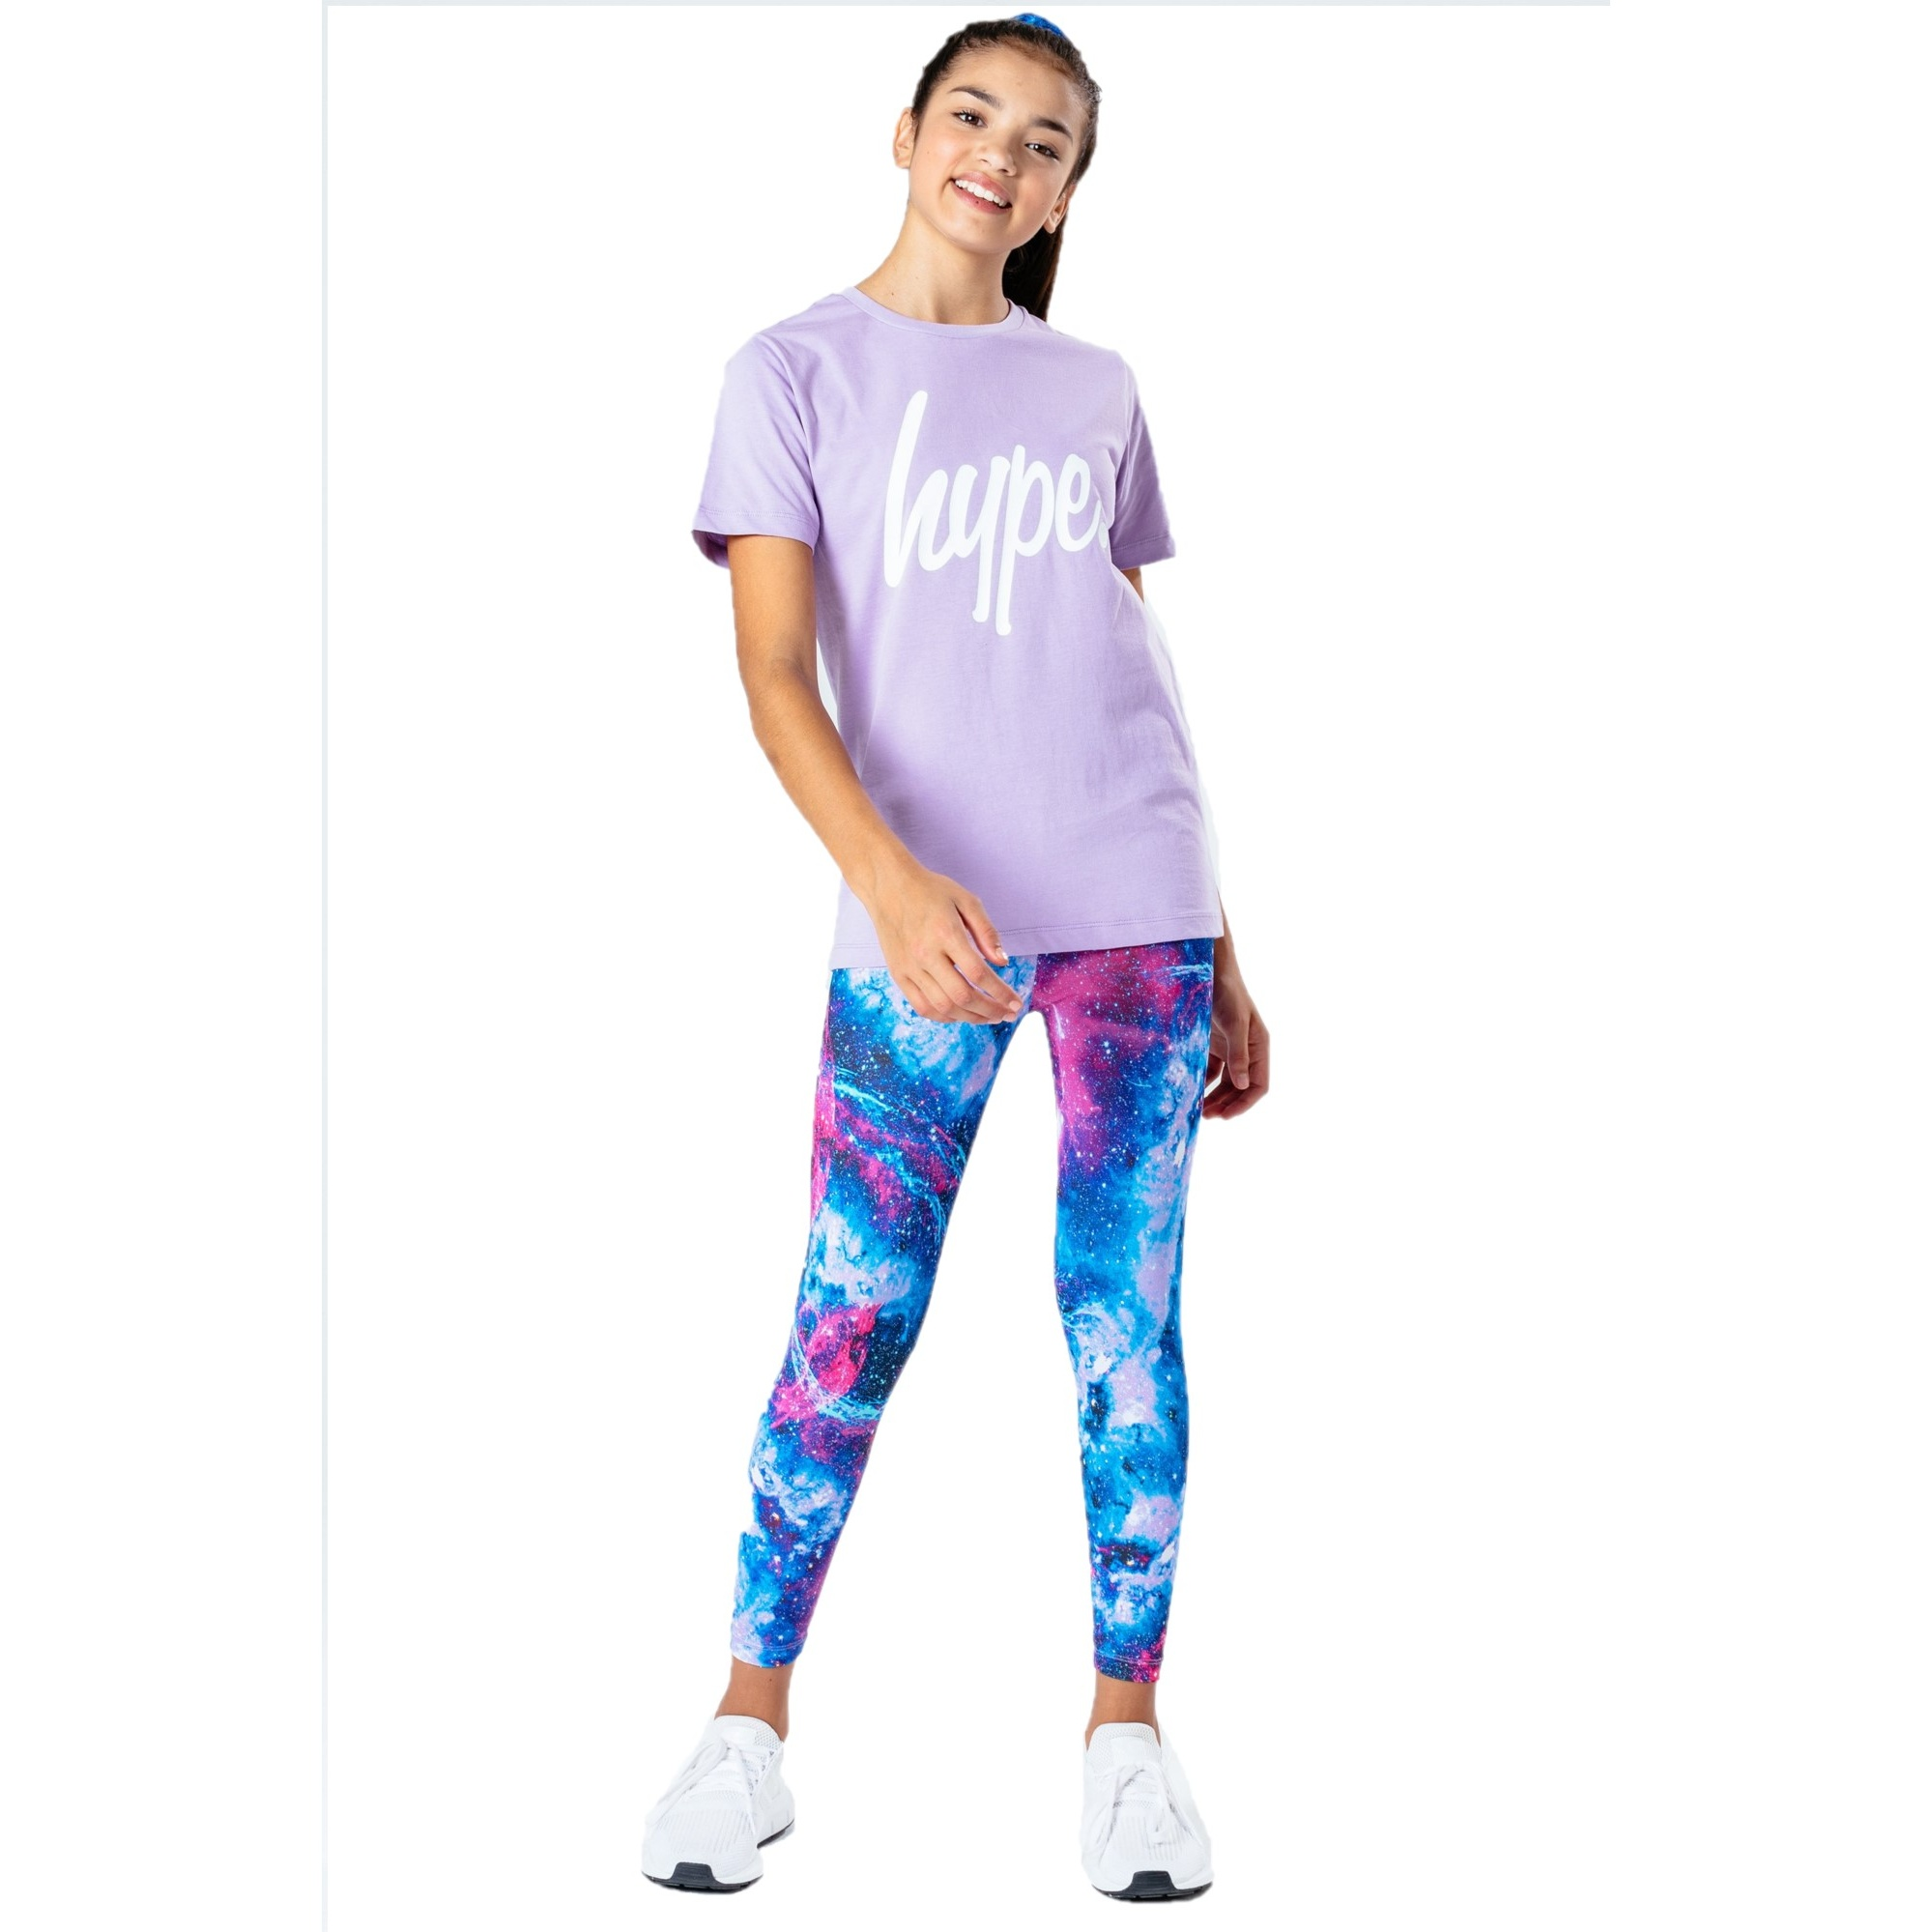 Hype Girls Cosmic T-shirt And Leggings Set (3-4 Years) (Lilac/Blue/Pink)